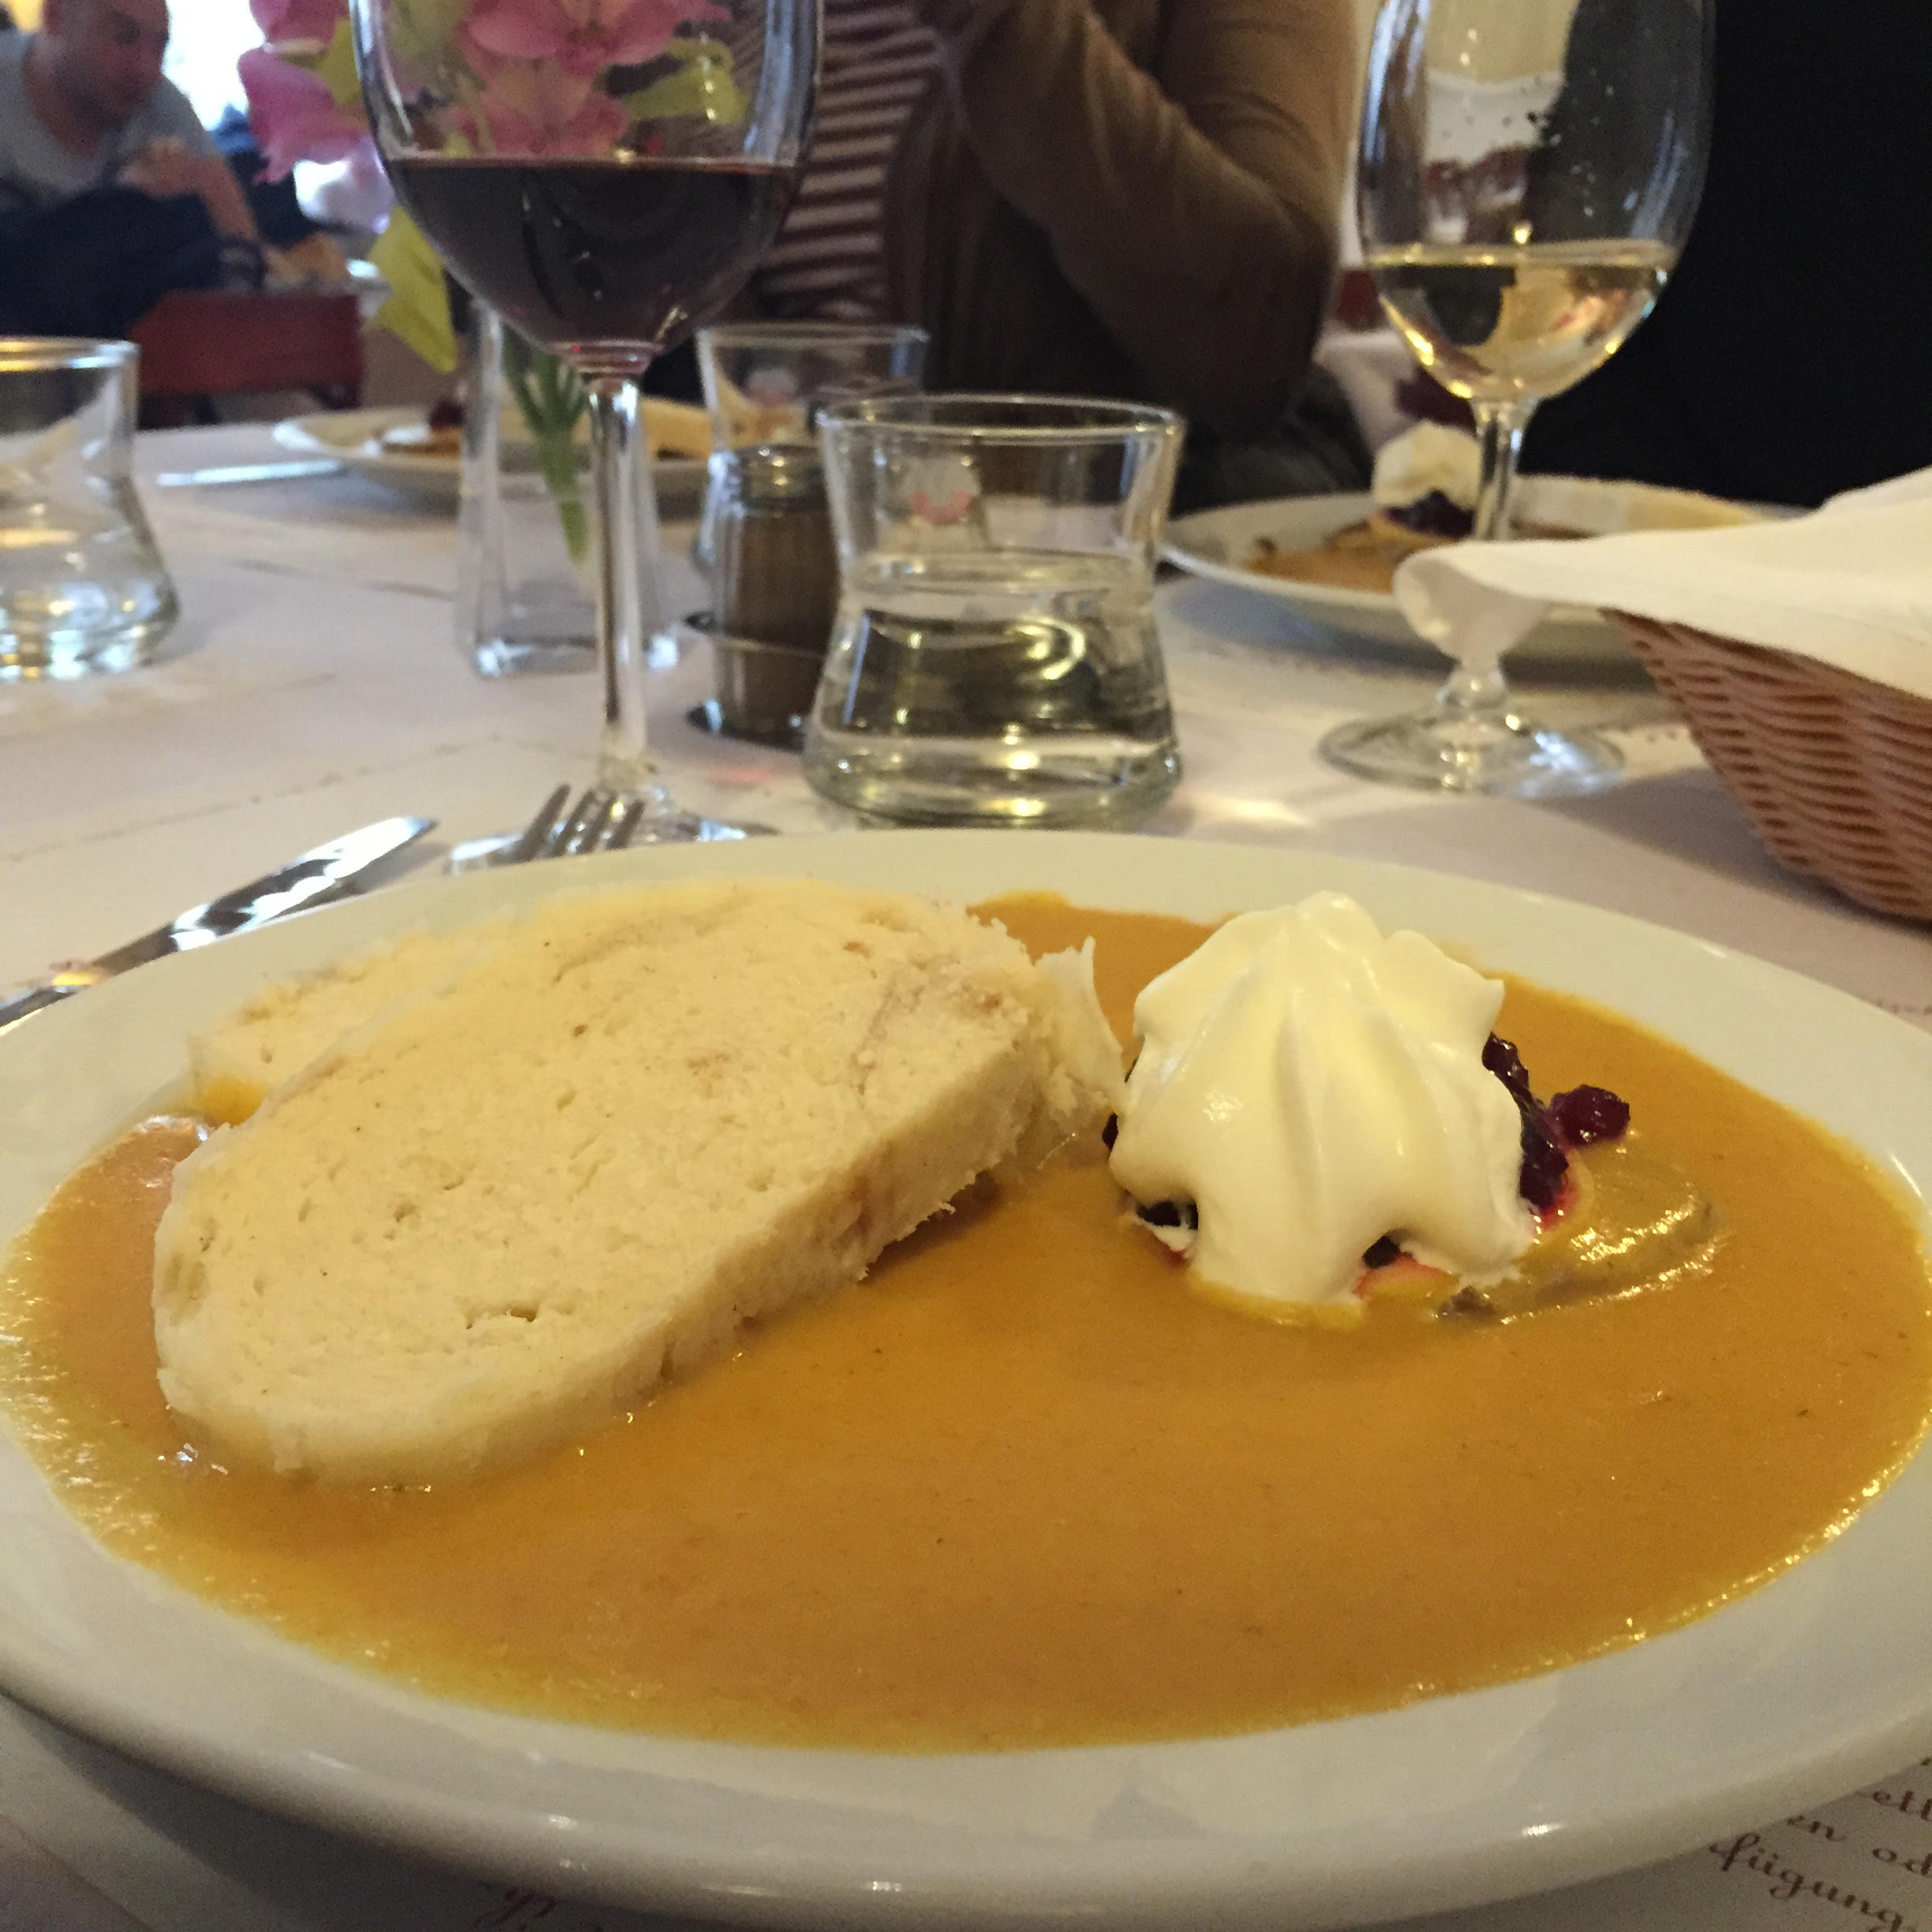 Cafe Louvre: Sirloin beef with cranberry jam served in soup like carrot gravy with potato dumplings and sour cream.